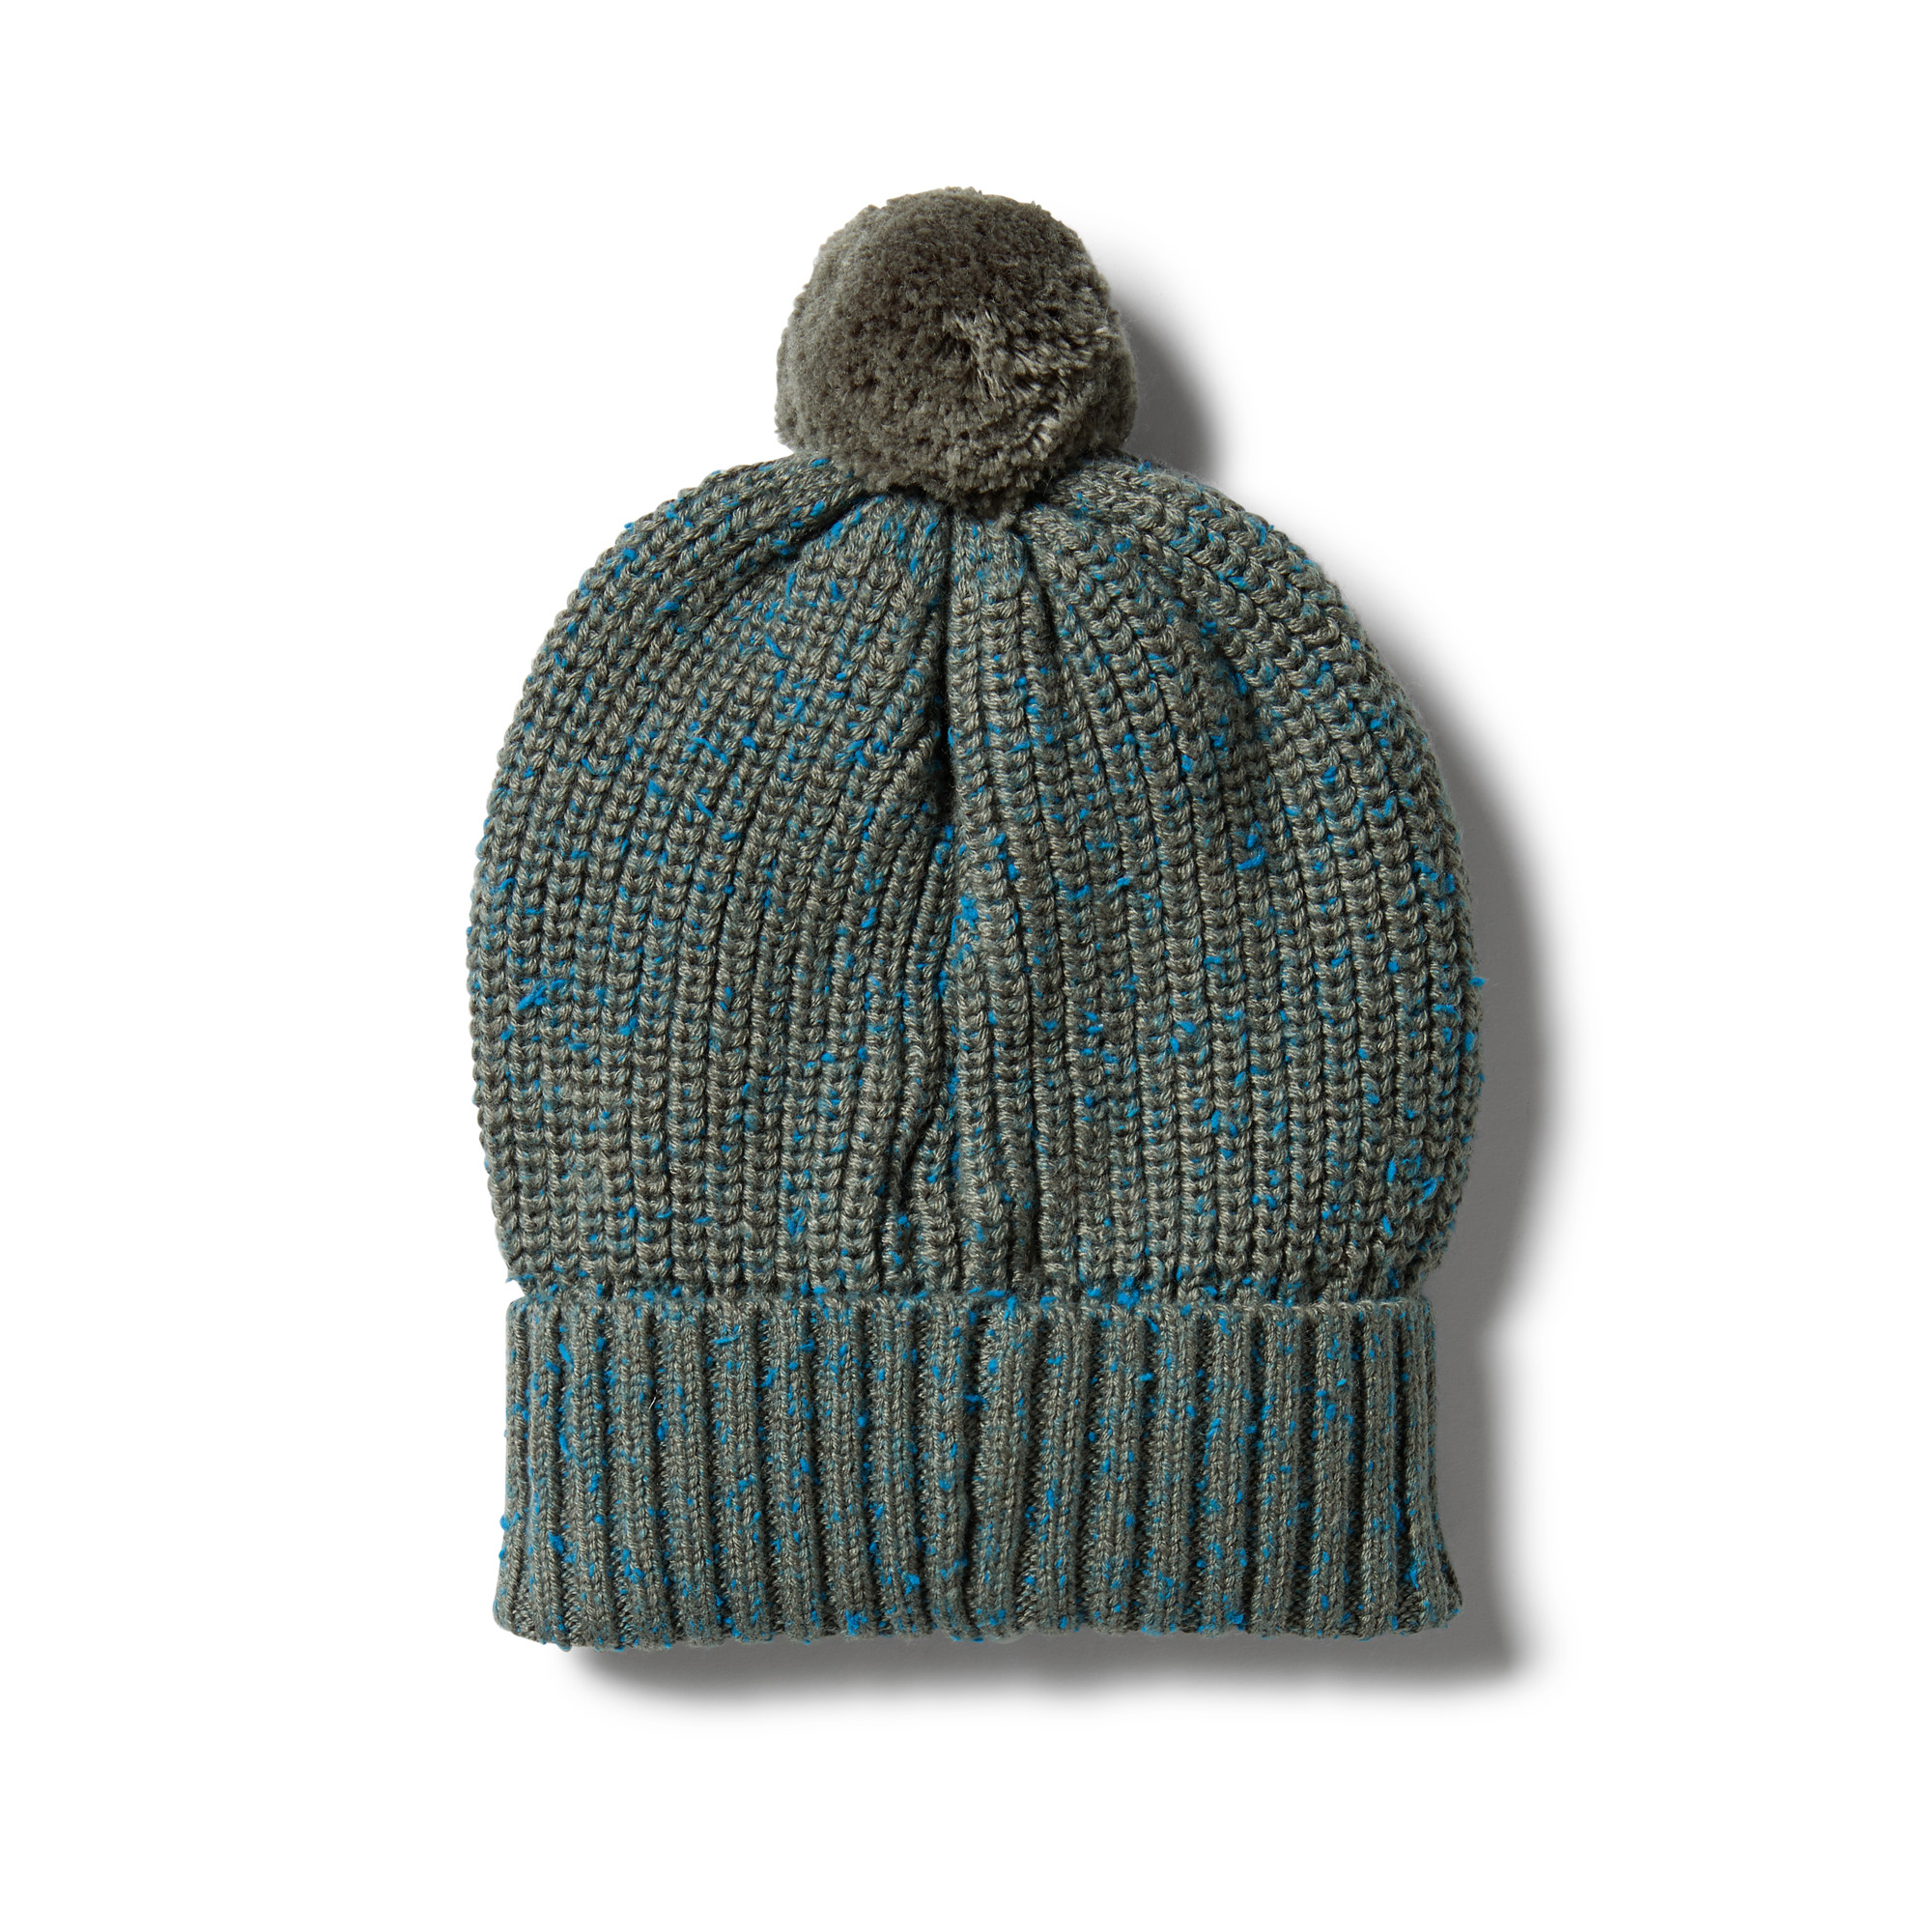 Wilson and Frenchy Knitted Hat